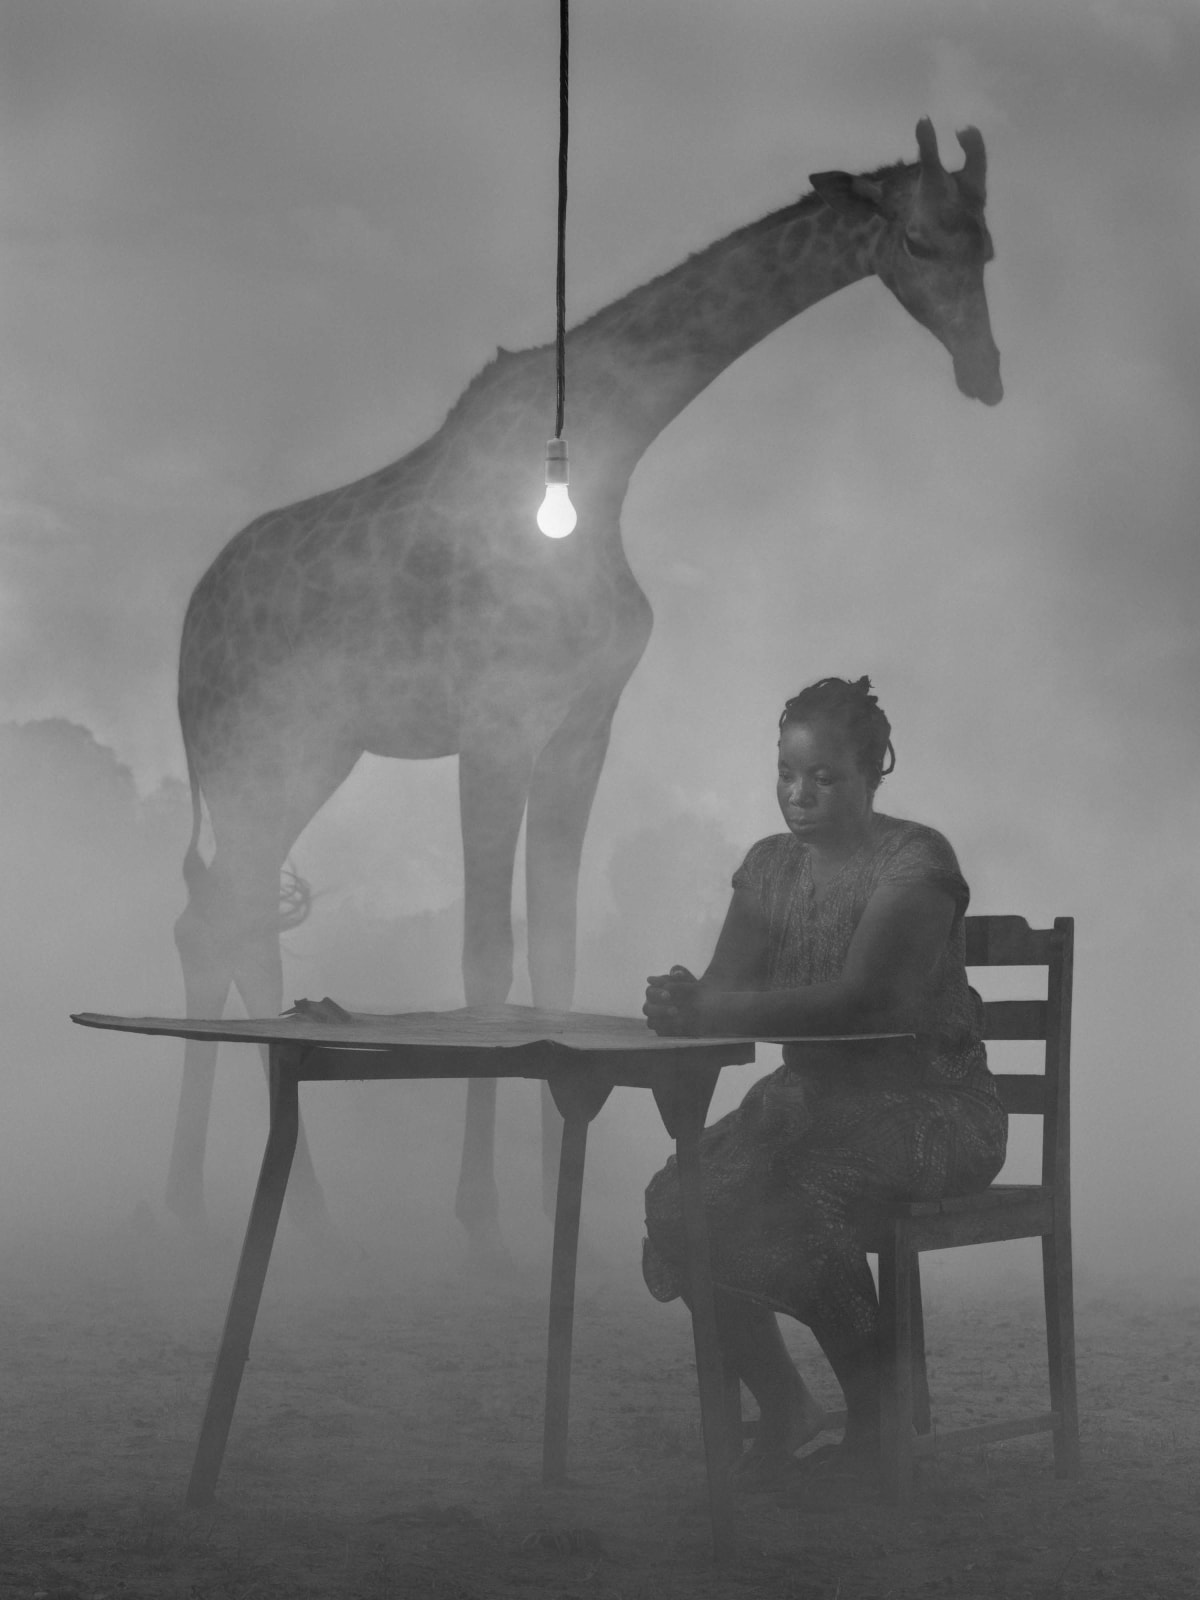 Kuda sitting at table with giraffe named Sky behind her, lightbulb hanging over table, Zimbabwe, from the Dawn May Break series by Nick Brandt